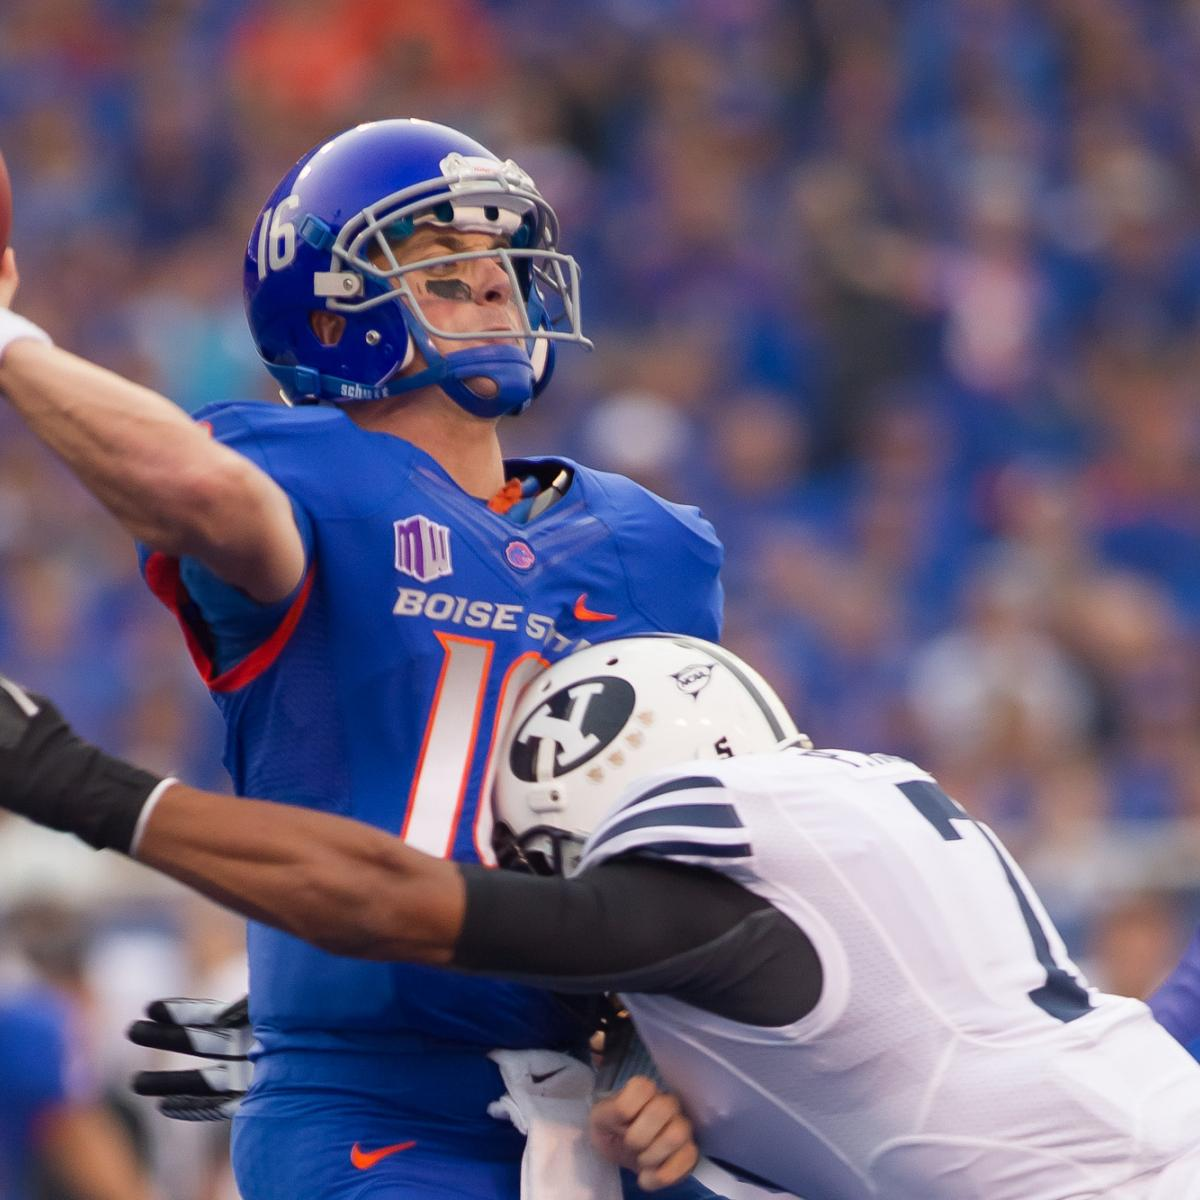 Boise State, BYU Send College Football Back to the Stone ...